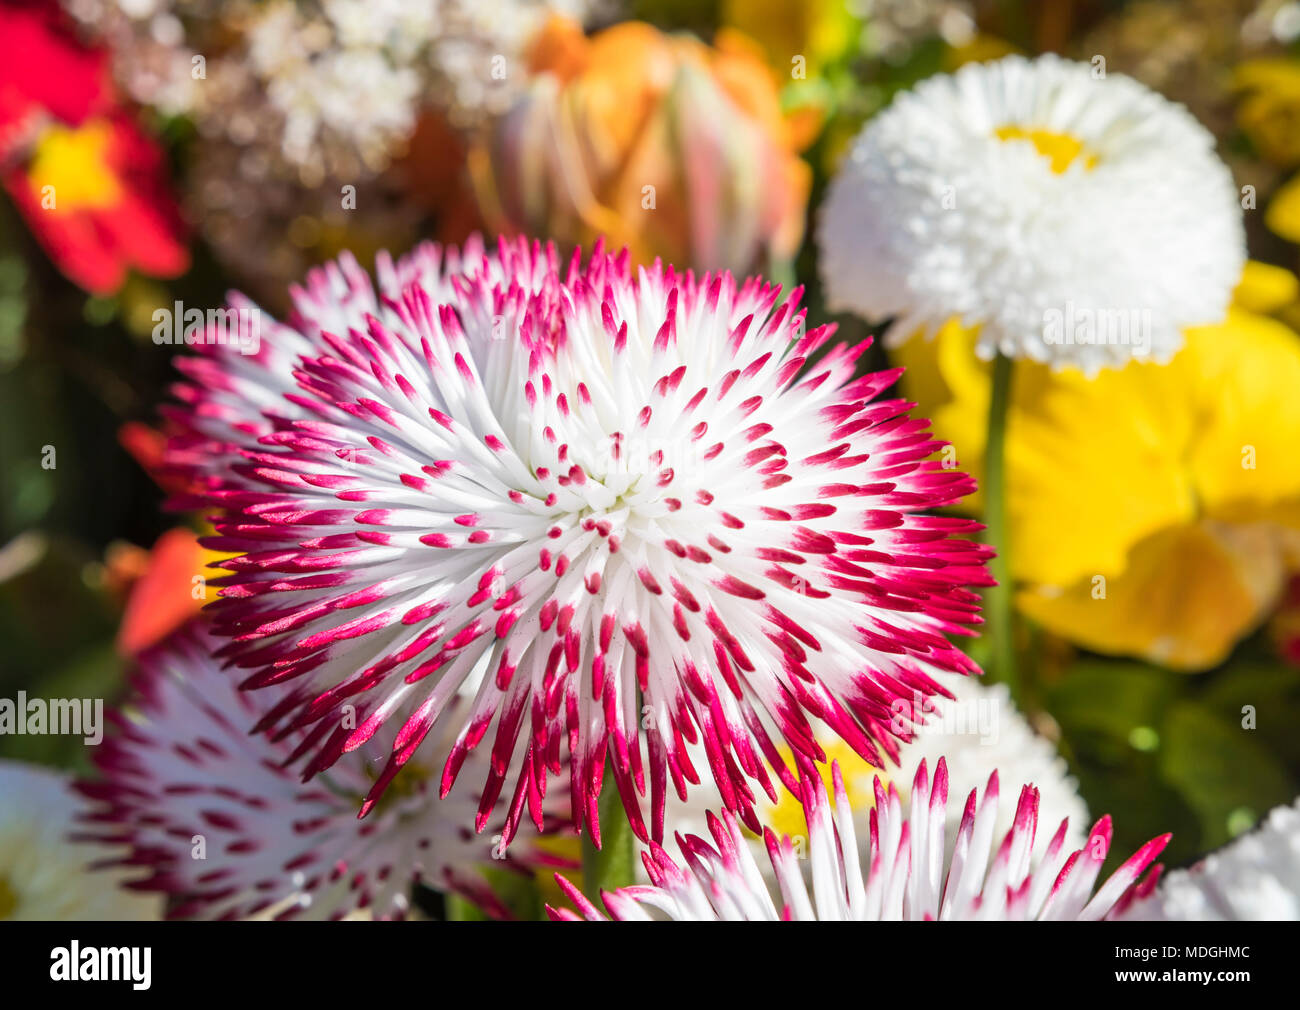 Bellis perennis 'Habanera White with Red Tips' red and white tipped (English Daisy, Lawn Daisy) dasies from the Habanera series in Spring in the UK. - Stock Image